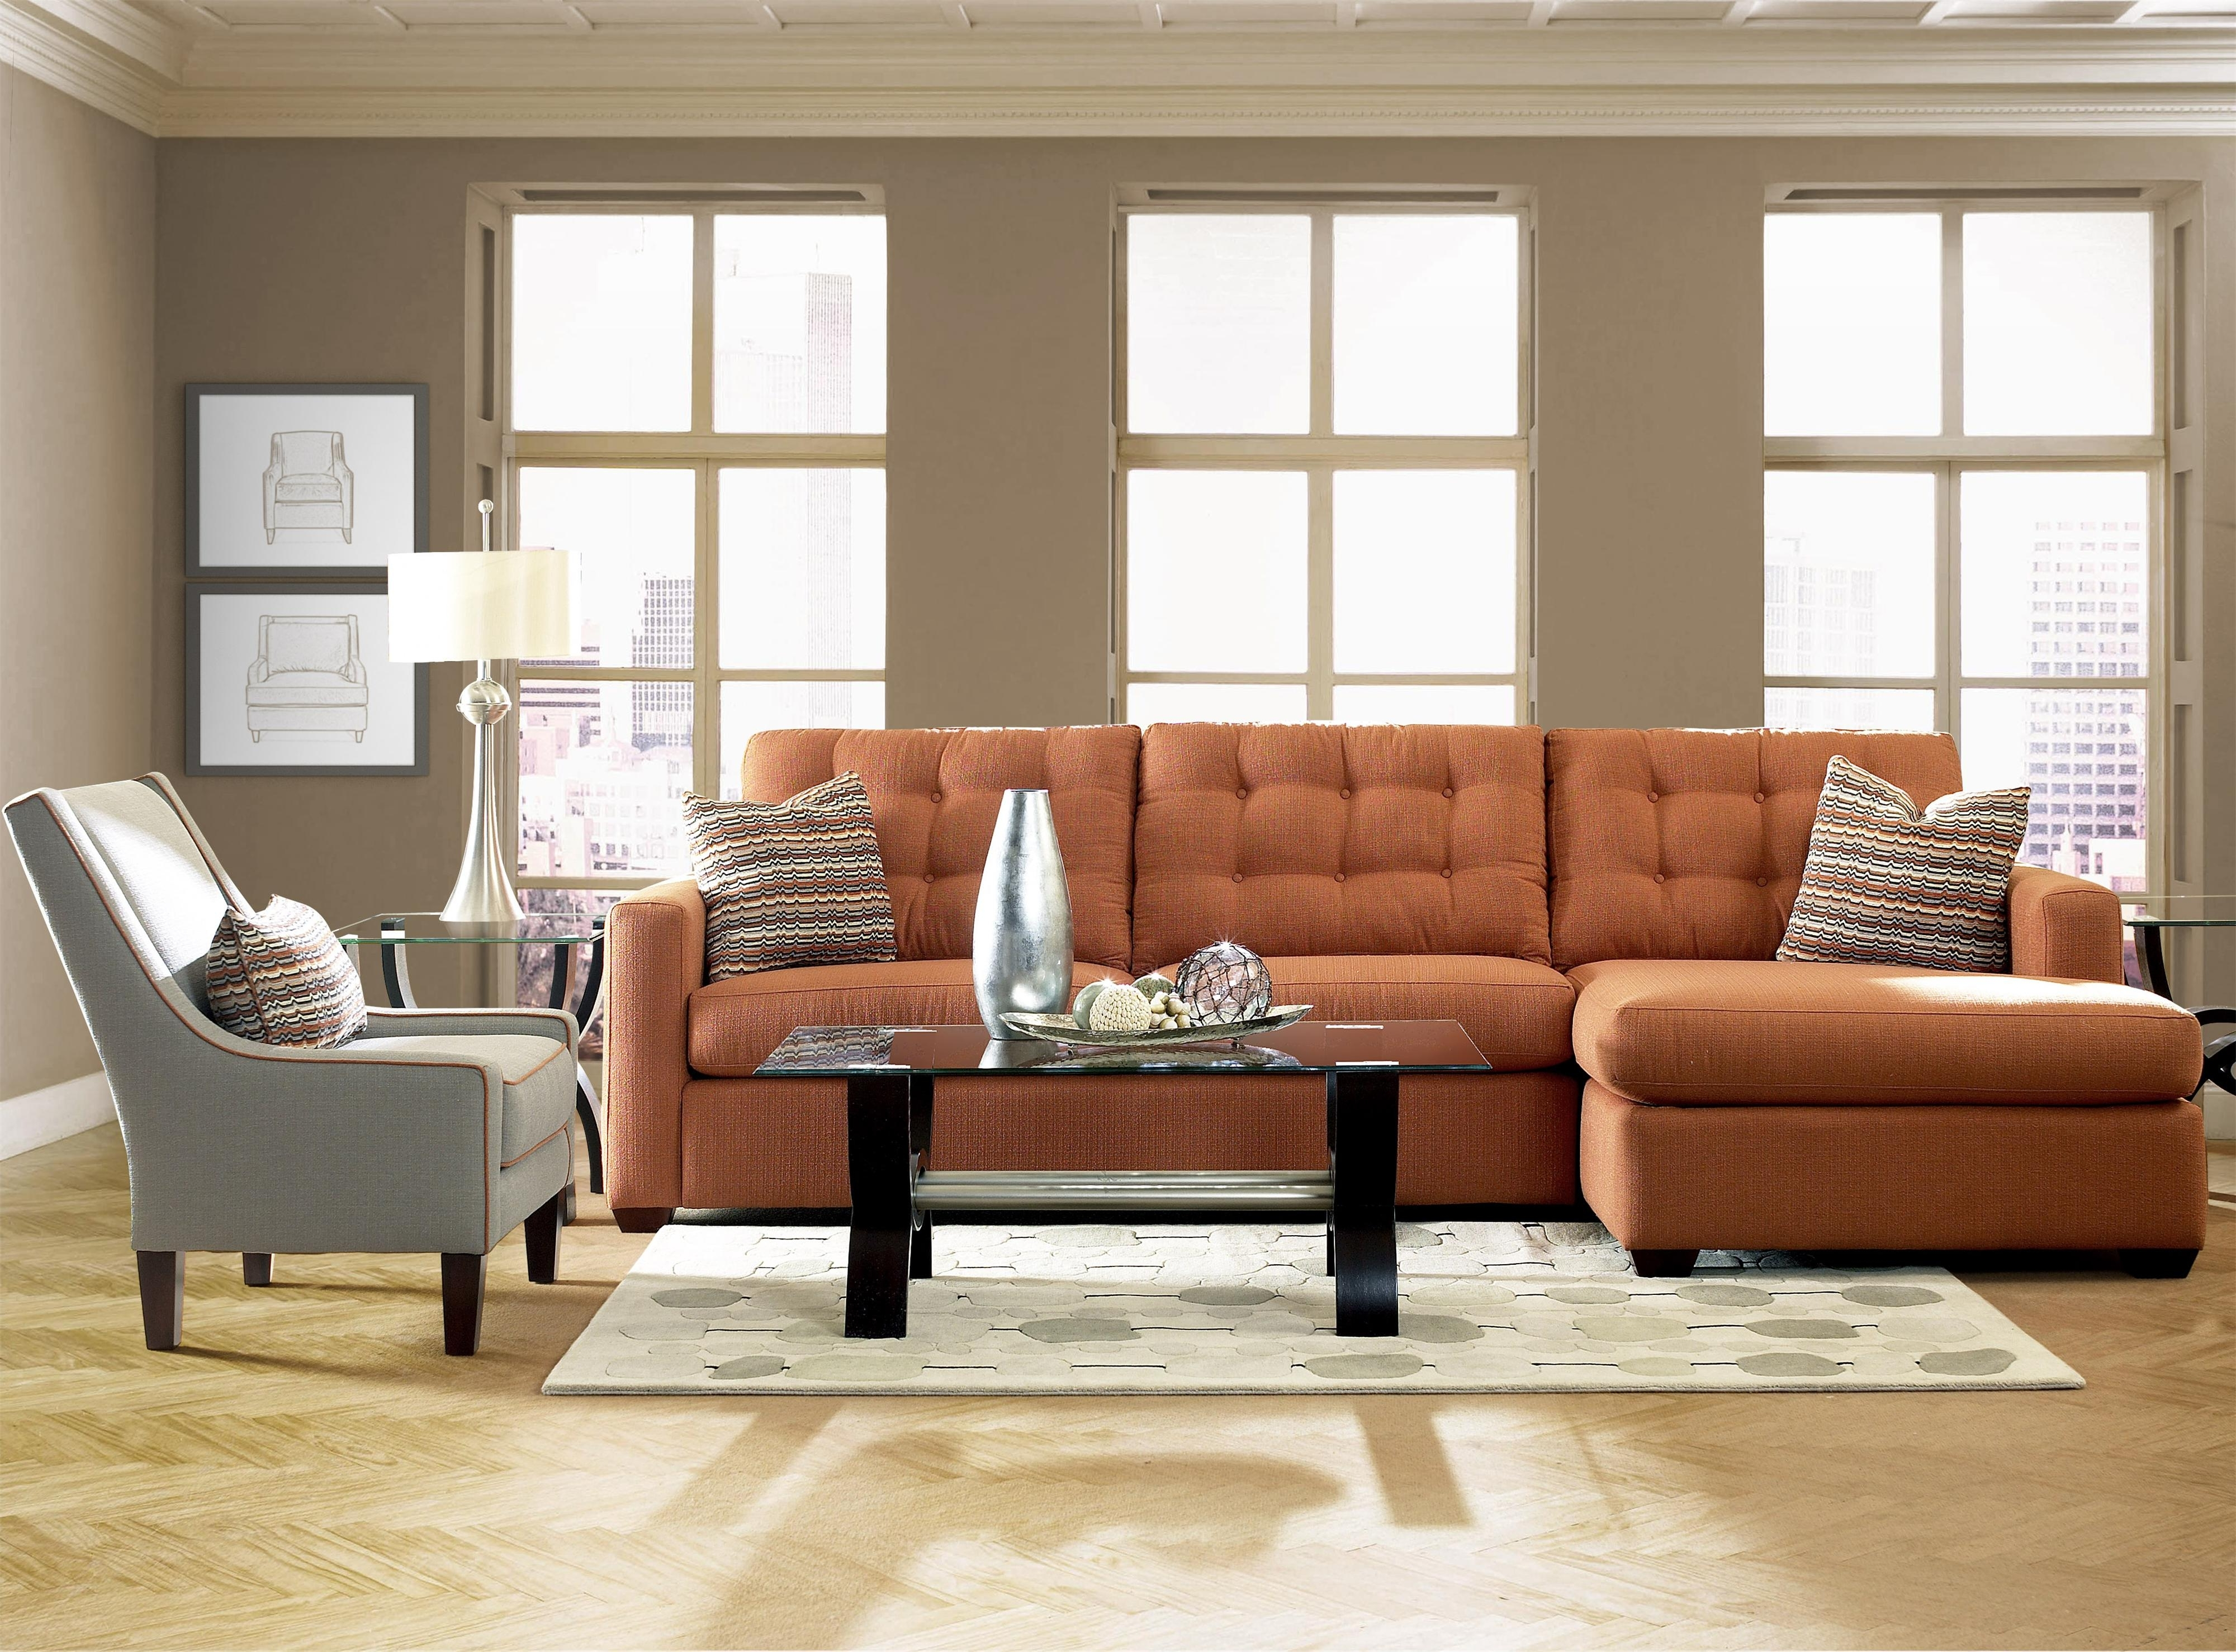 Sofa And Chaise Sets Within Popular Sofa And Chaise Lounge Set – Home And Textiles (View 14 of 15)